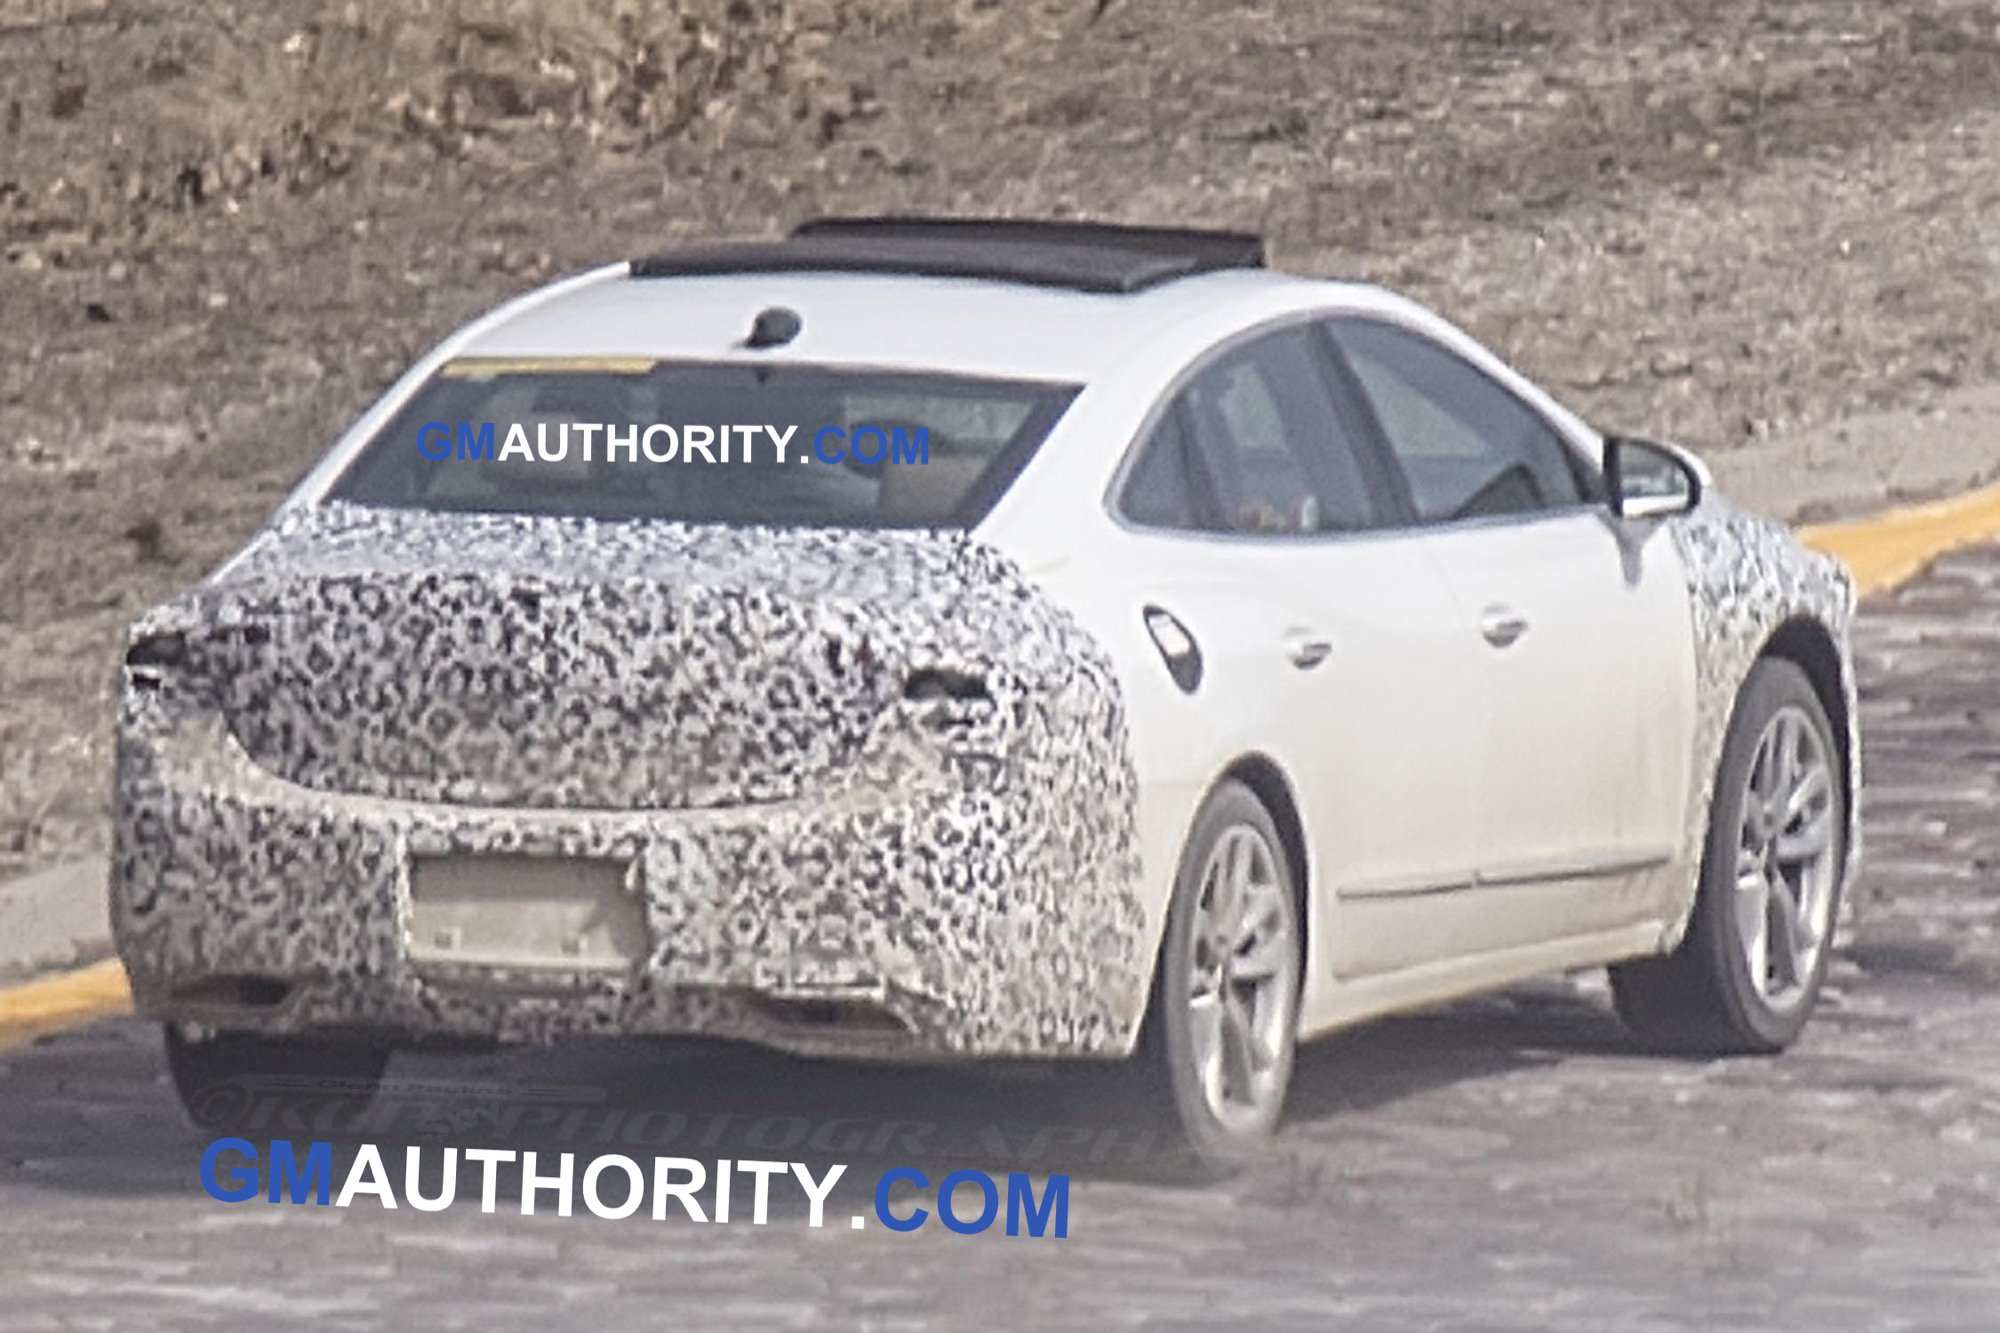 58 New 2020 Buick Verano Spy Pricing by 2020 Buick Verano Spy